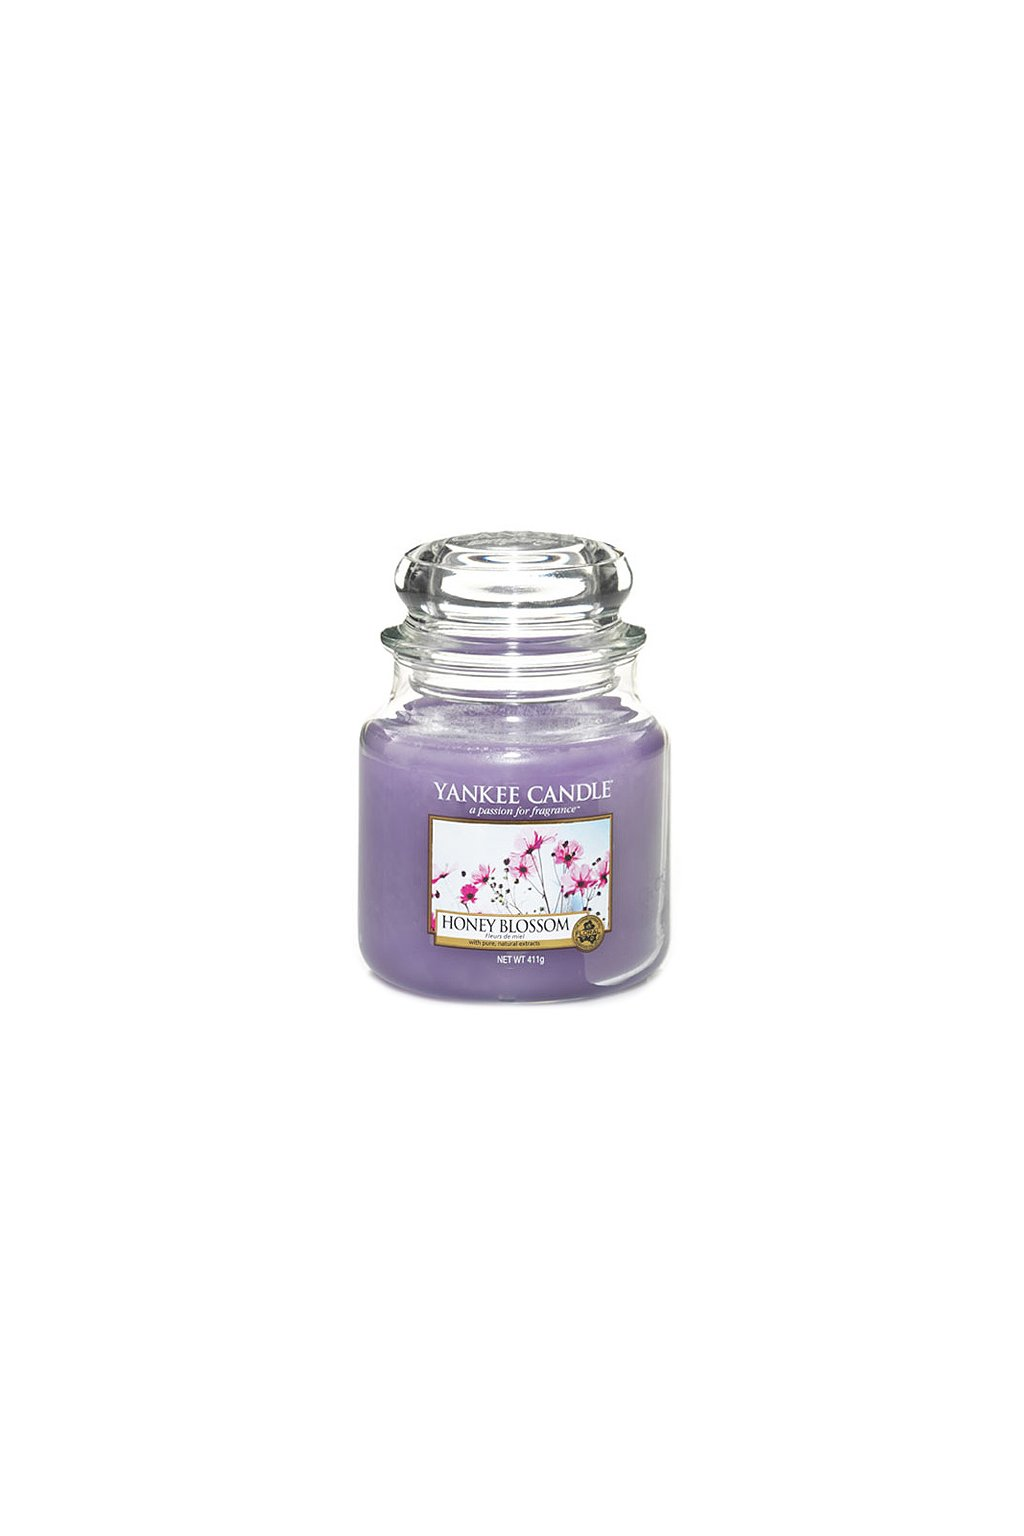 Yankee Candle Honey Blossom 410g